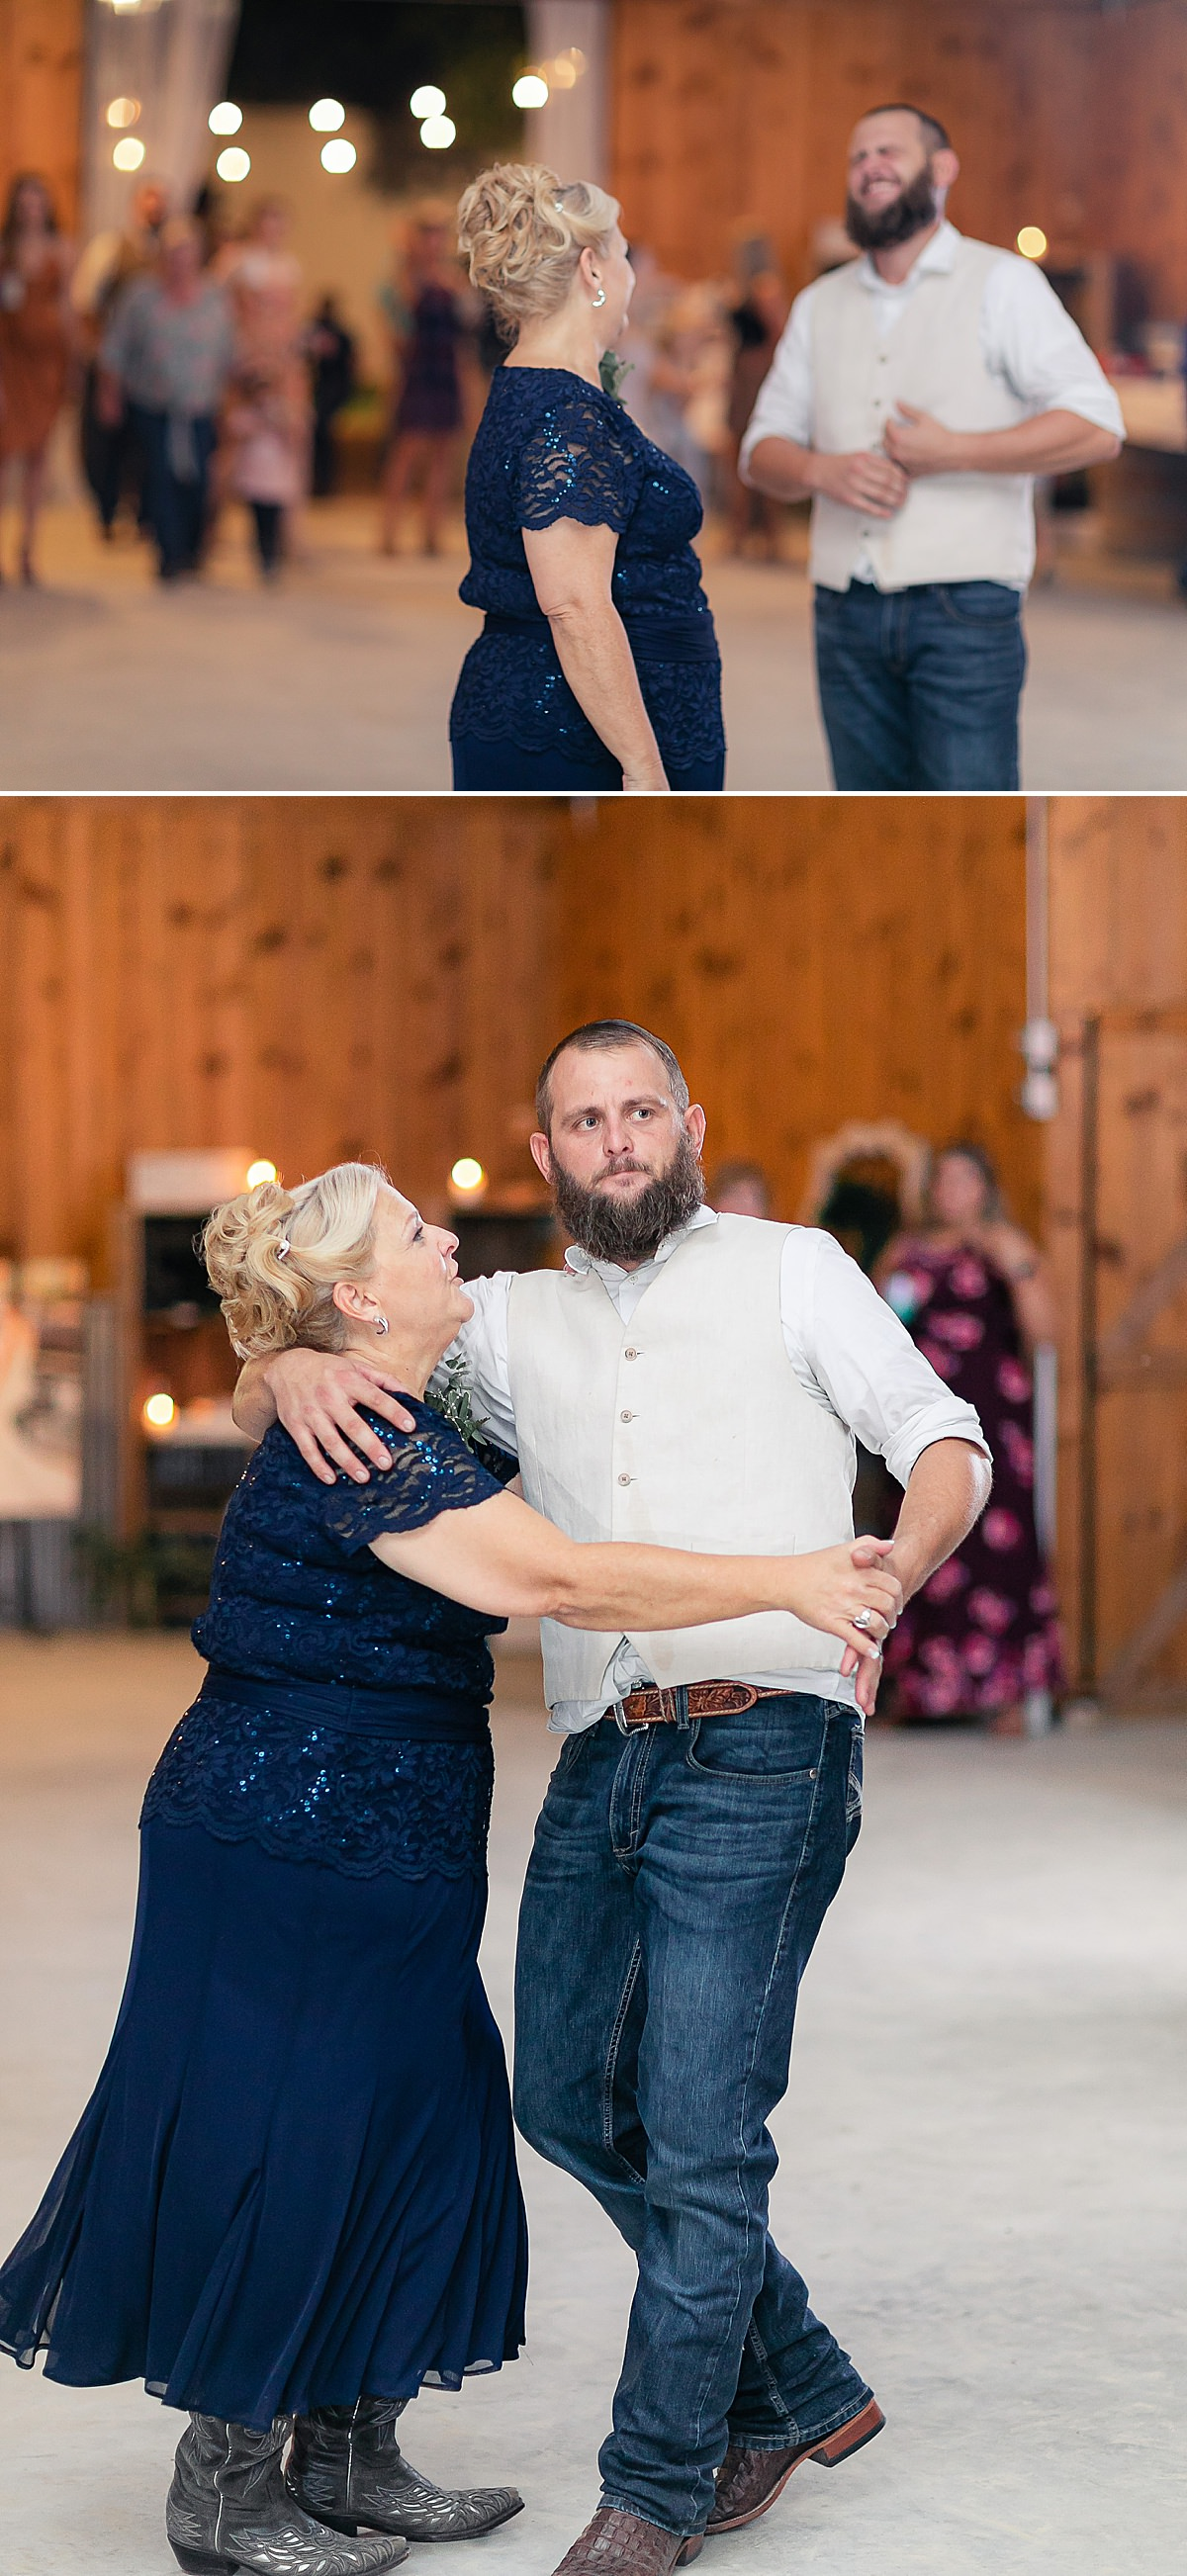 Rustic-Texas-Wedding-Hollow-Creek-Ranch-Carly-Barton-Photography_0032.jpg